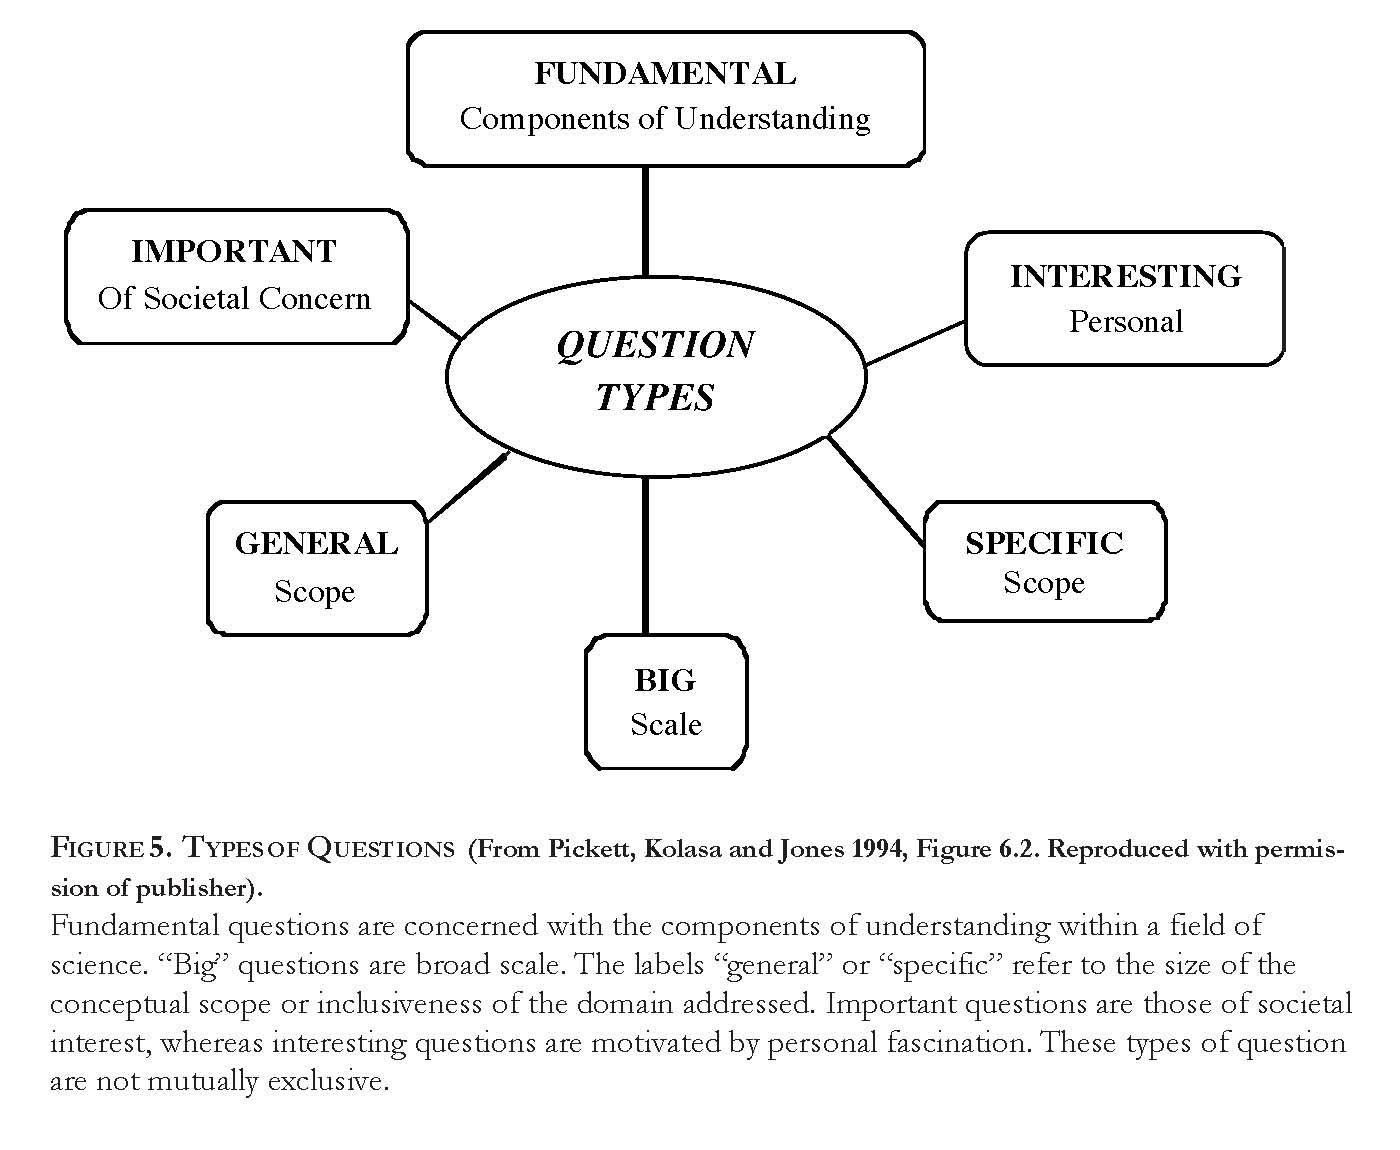 b motivating theory fundamental questions and radical synthesis formulating fundamental questions can also facilitate change in understanding by clarifying the scope of inquiry tinbergen s 1963 four questions are an